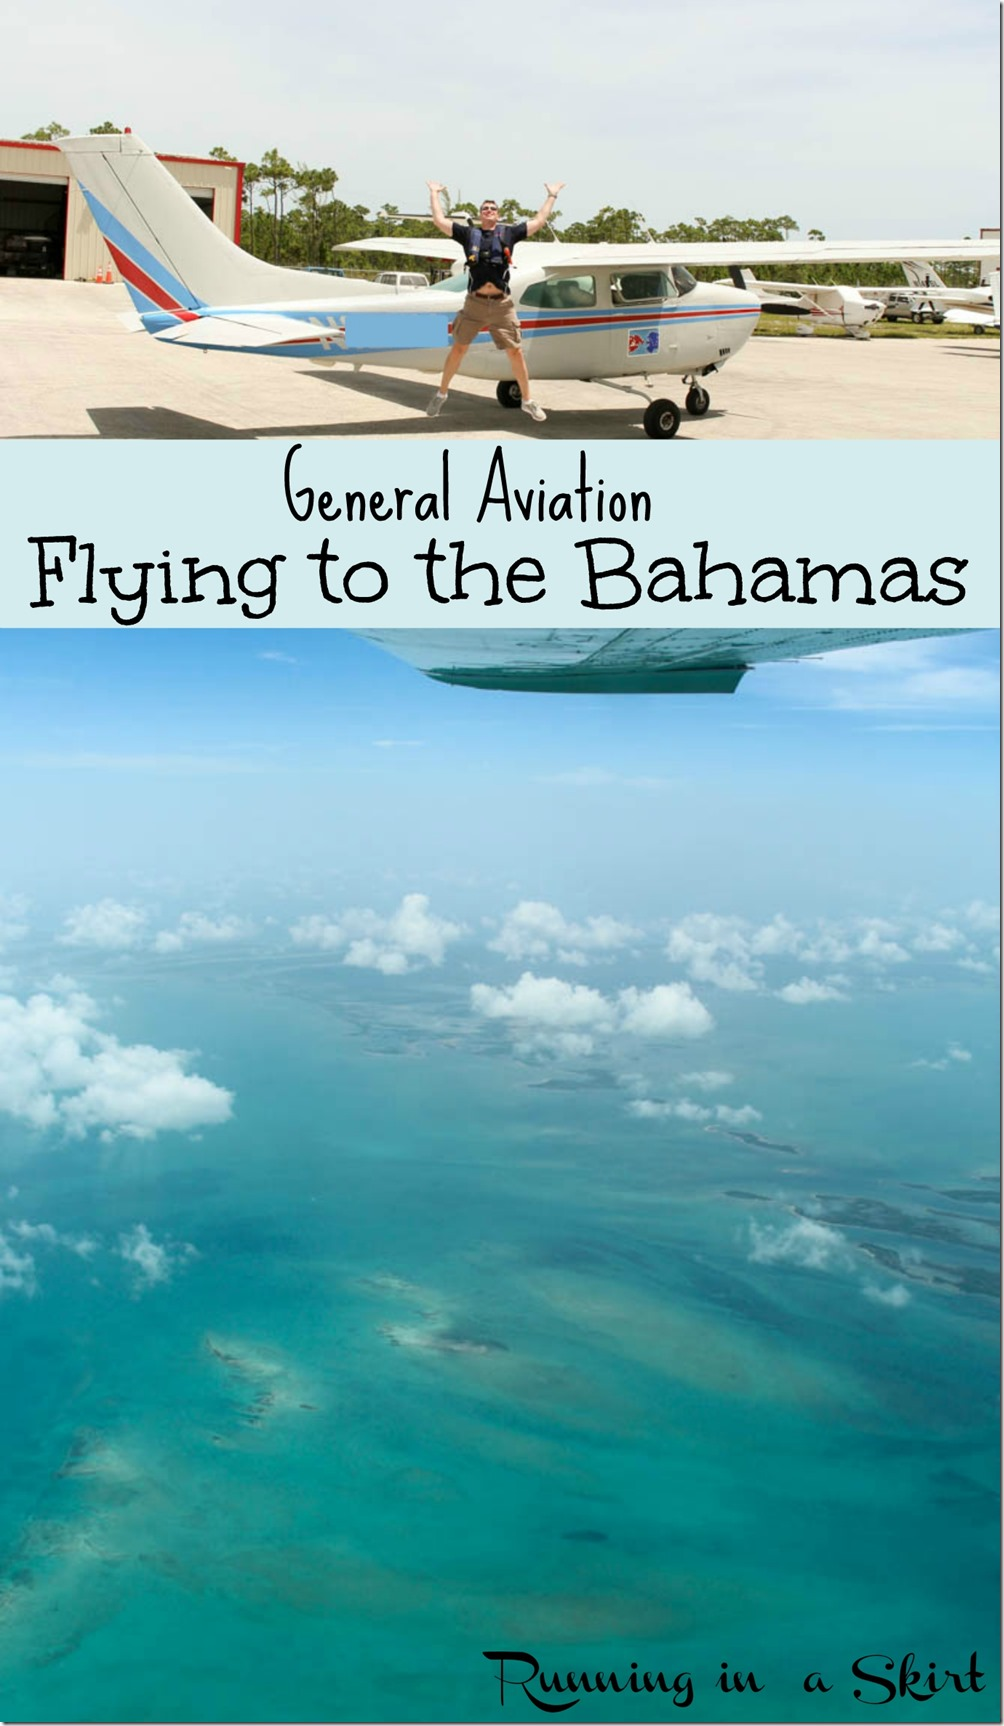 General Aviation Flying to the Bahamas, Marsh Harbor Airport